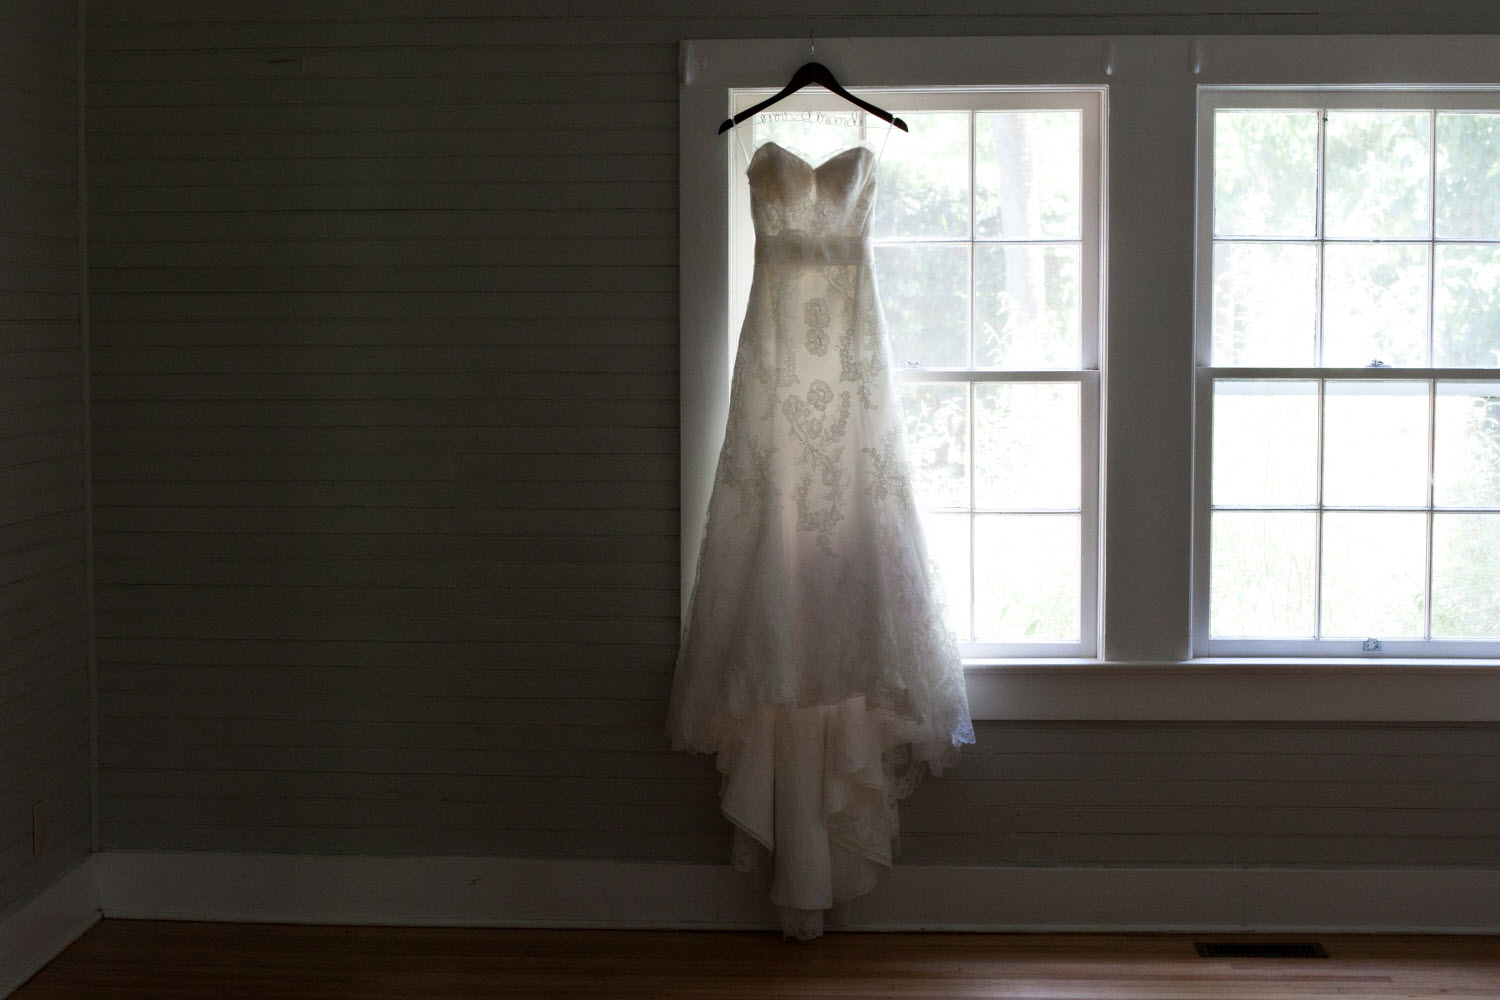 White-lace-wedding-dress-hangs-in-window-of-outdoor-florida-wedding-venue.original